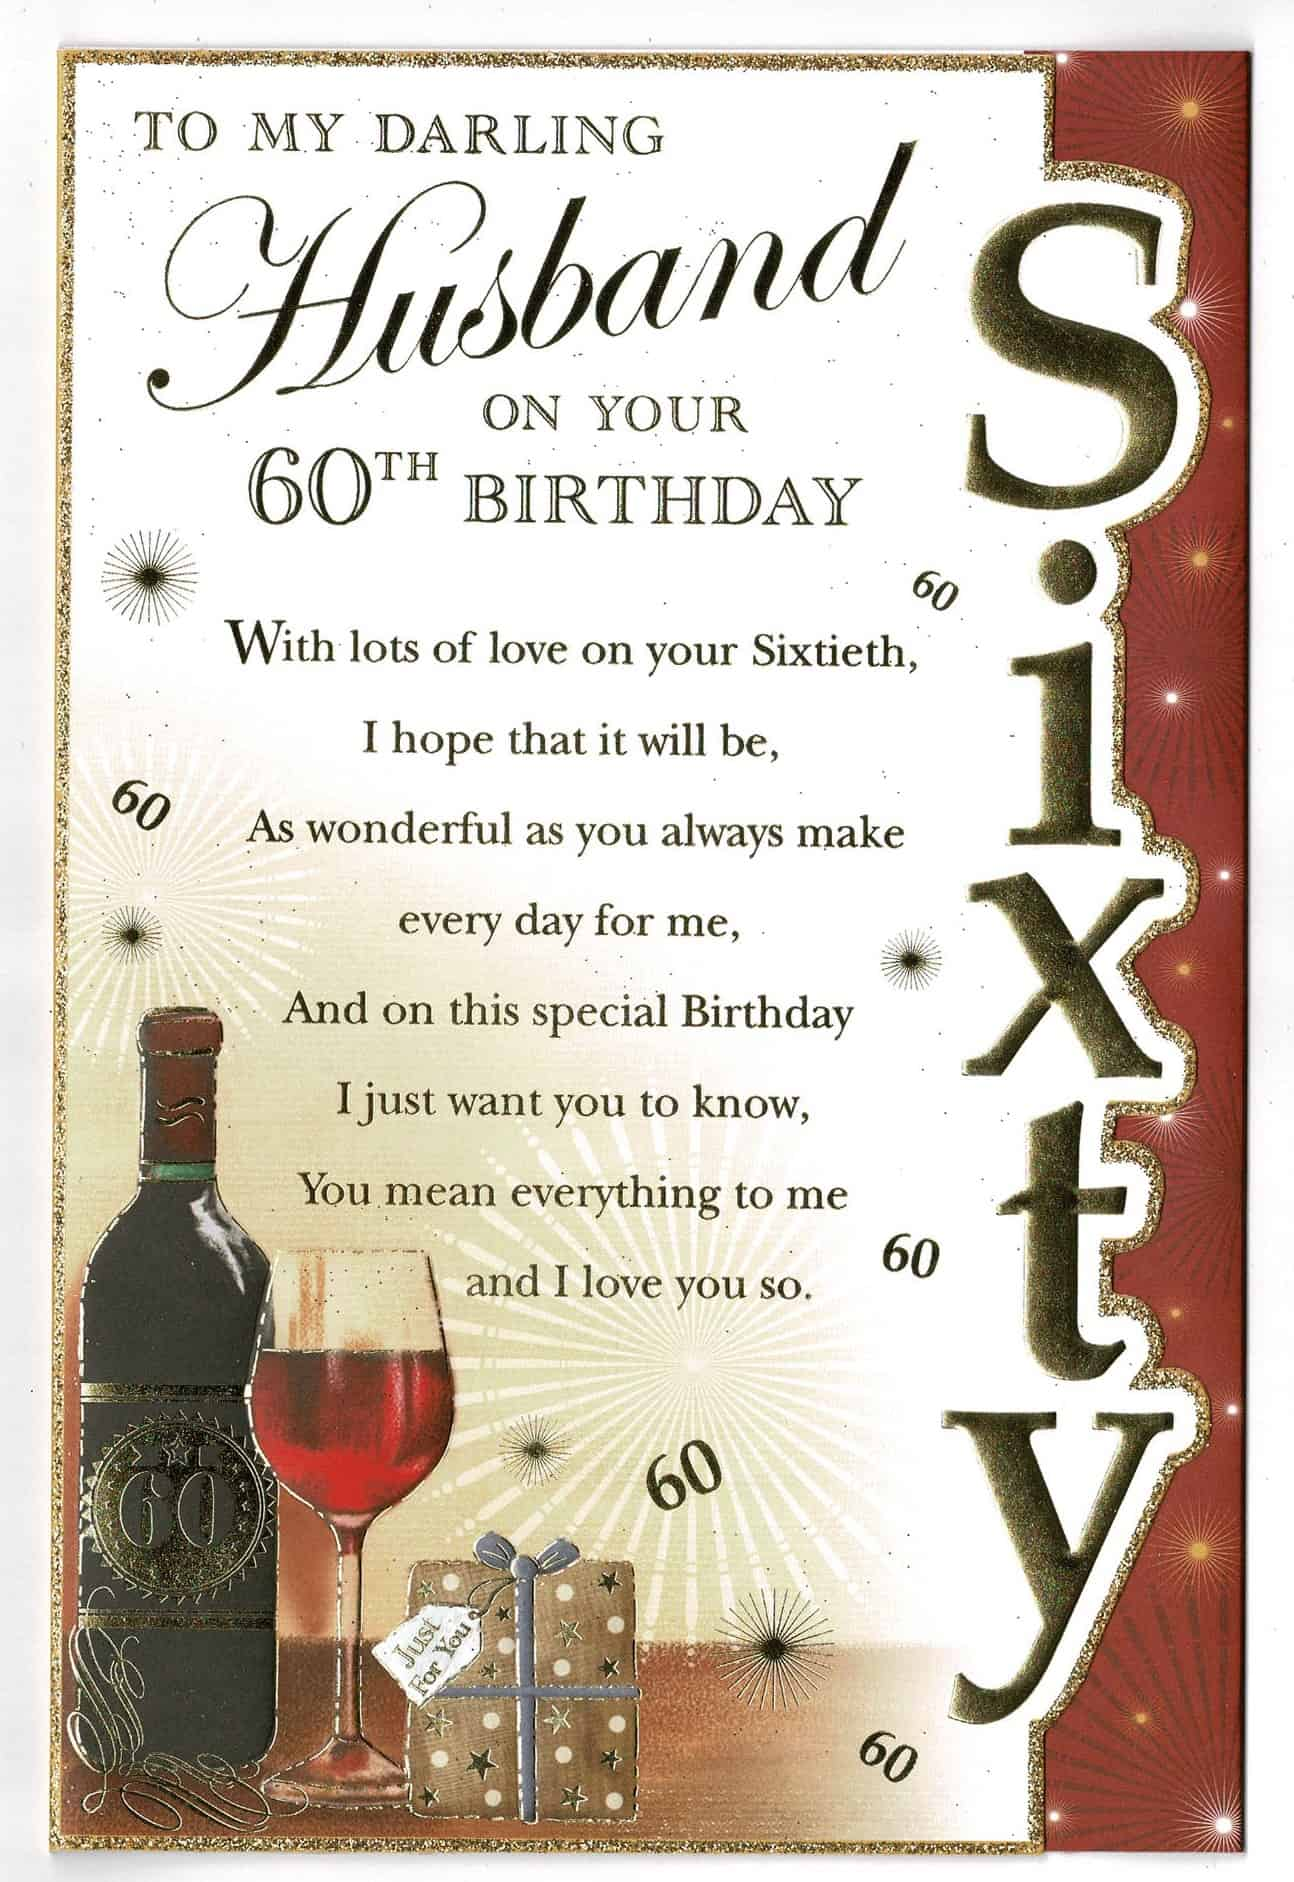 husband birthday card to my darling husband on your 60th